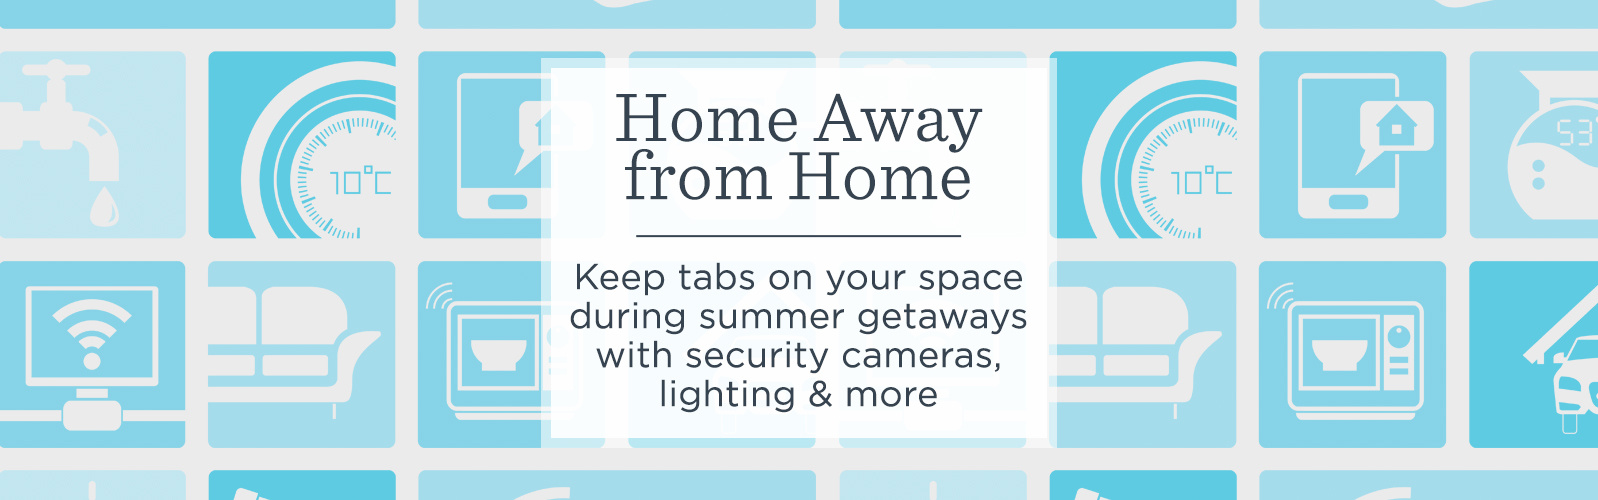 Home Away From Home.   Keep tabs on your space during summer getaways with security cameras, lighting & more